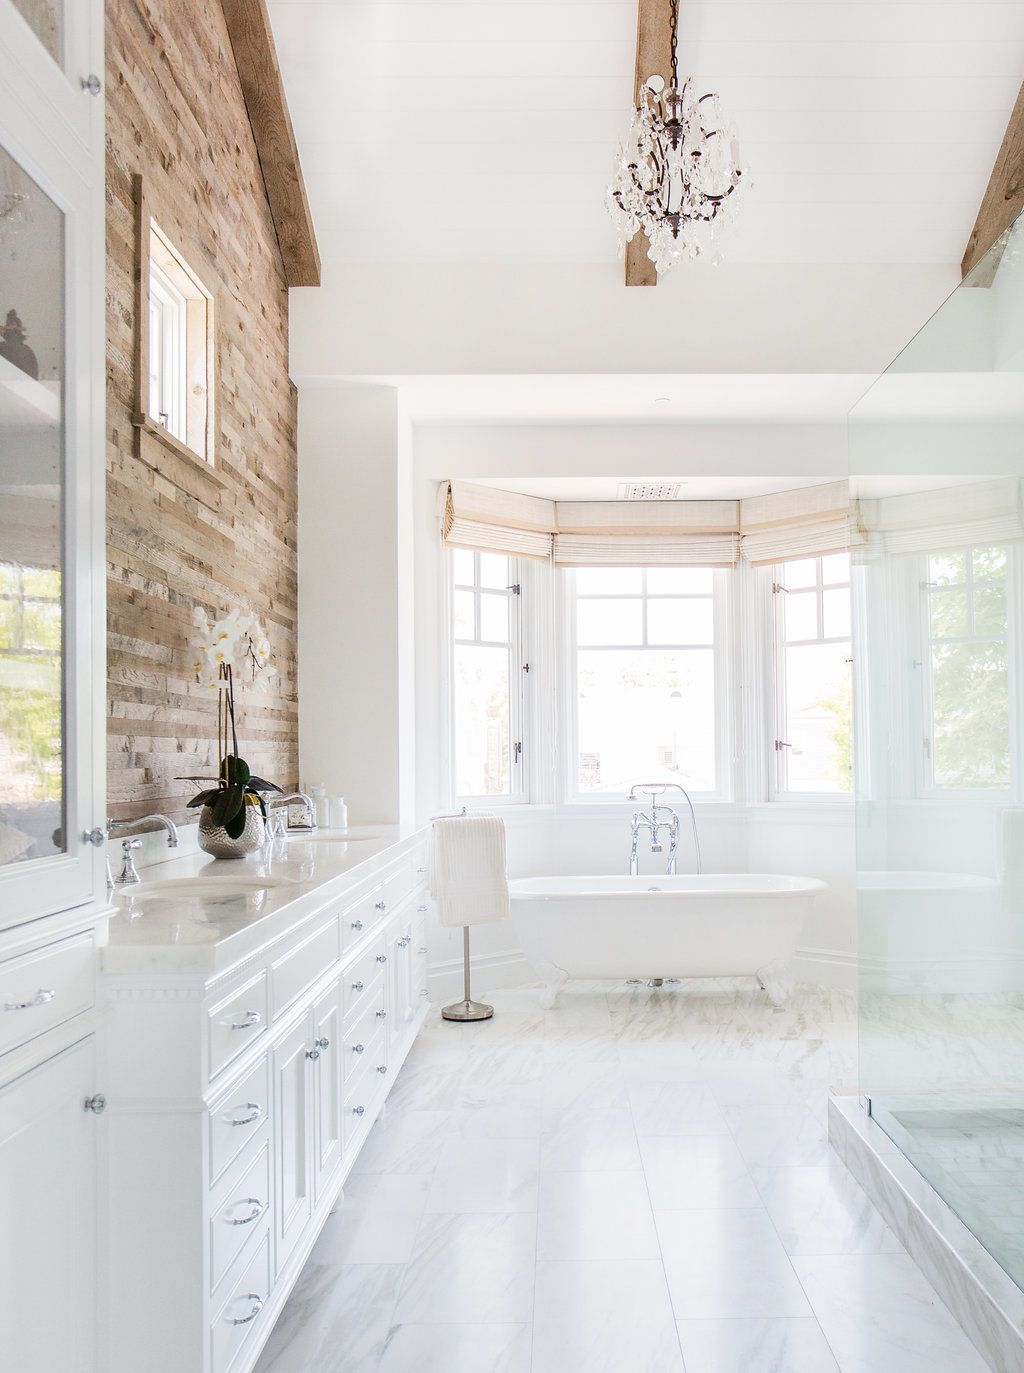 10 Bathrooms to Copy for an At-Home Spa Vibe | Spa, Bath and Create